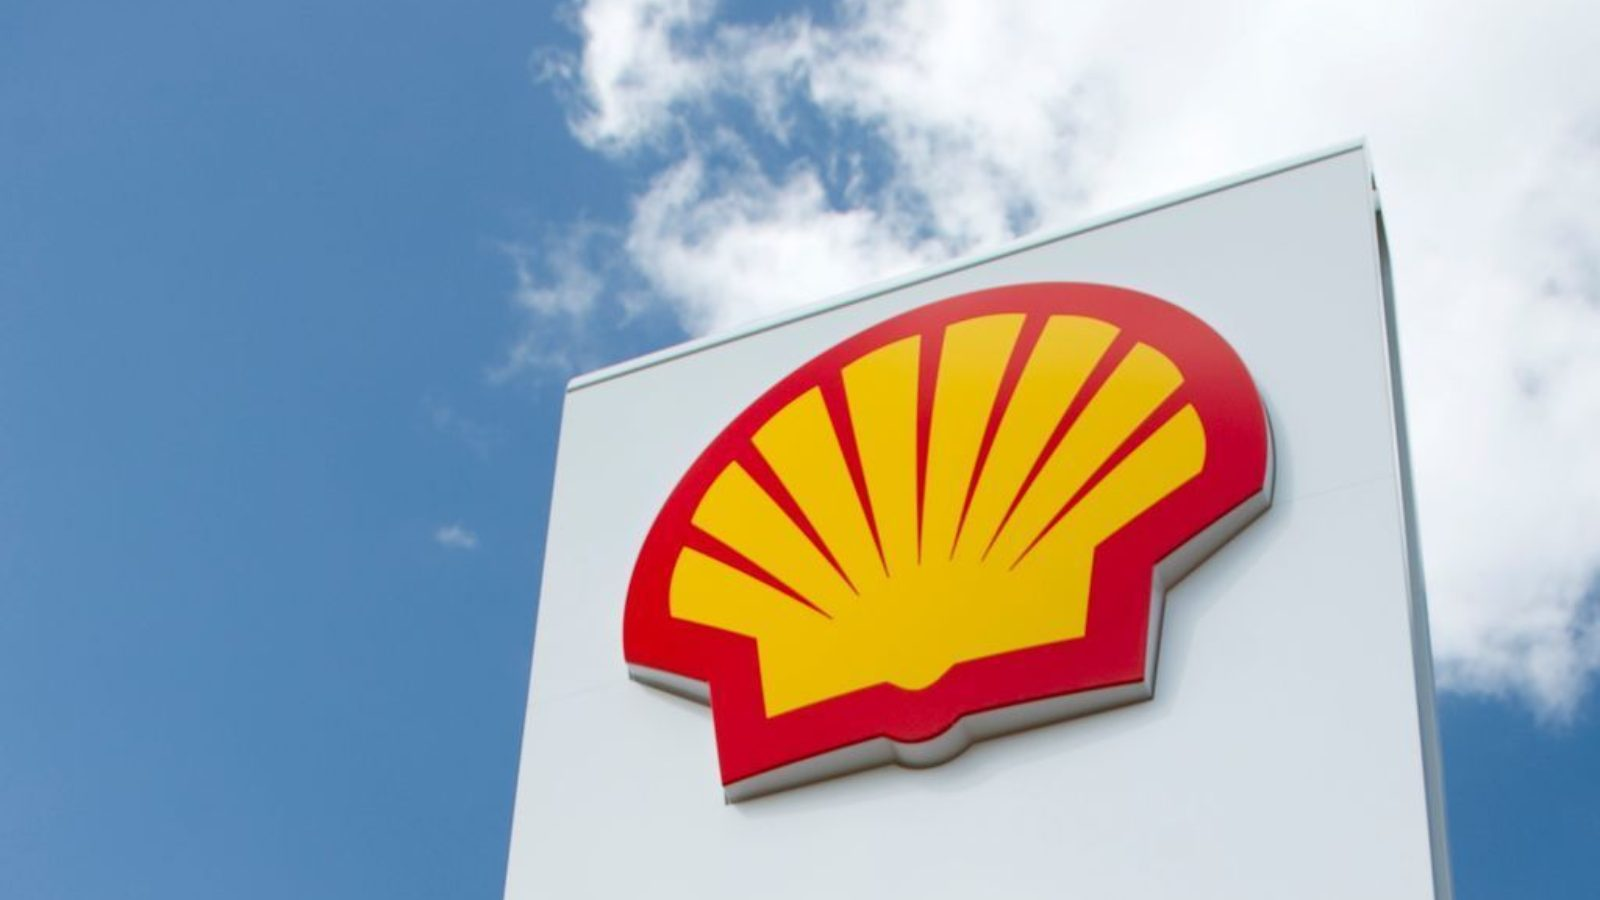 Royal Dutch Shell plc second quarter 2020 results and dividend announcements